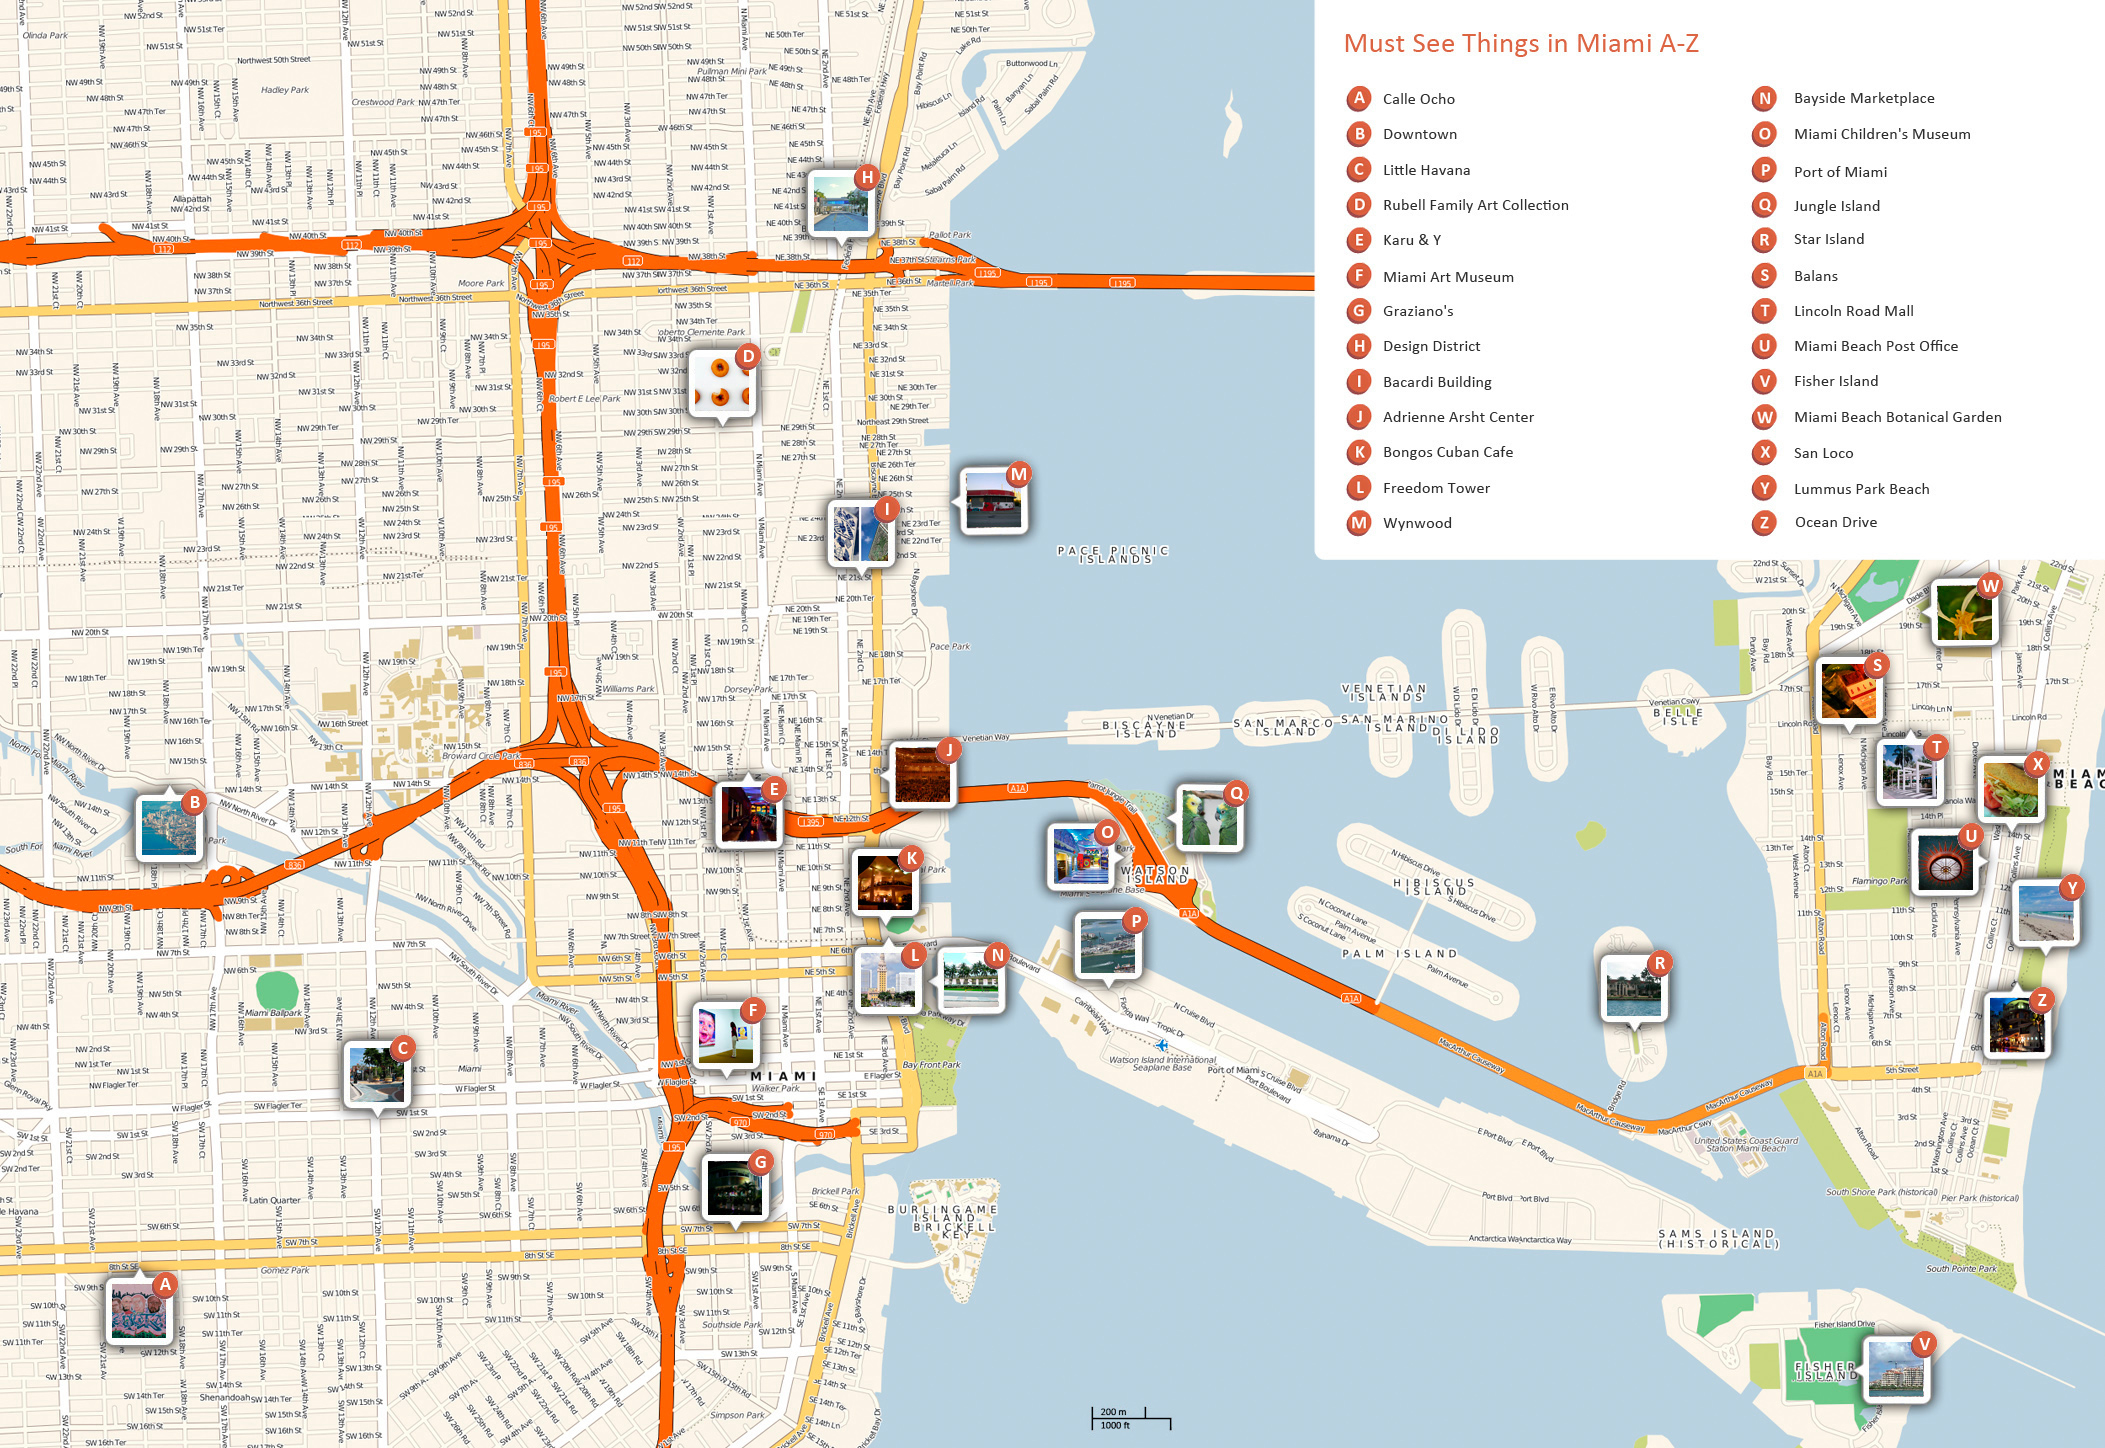 Large Miami Maps For Free Download And Print   High-Resolution And - Florida Travel Guide Map